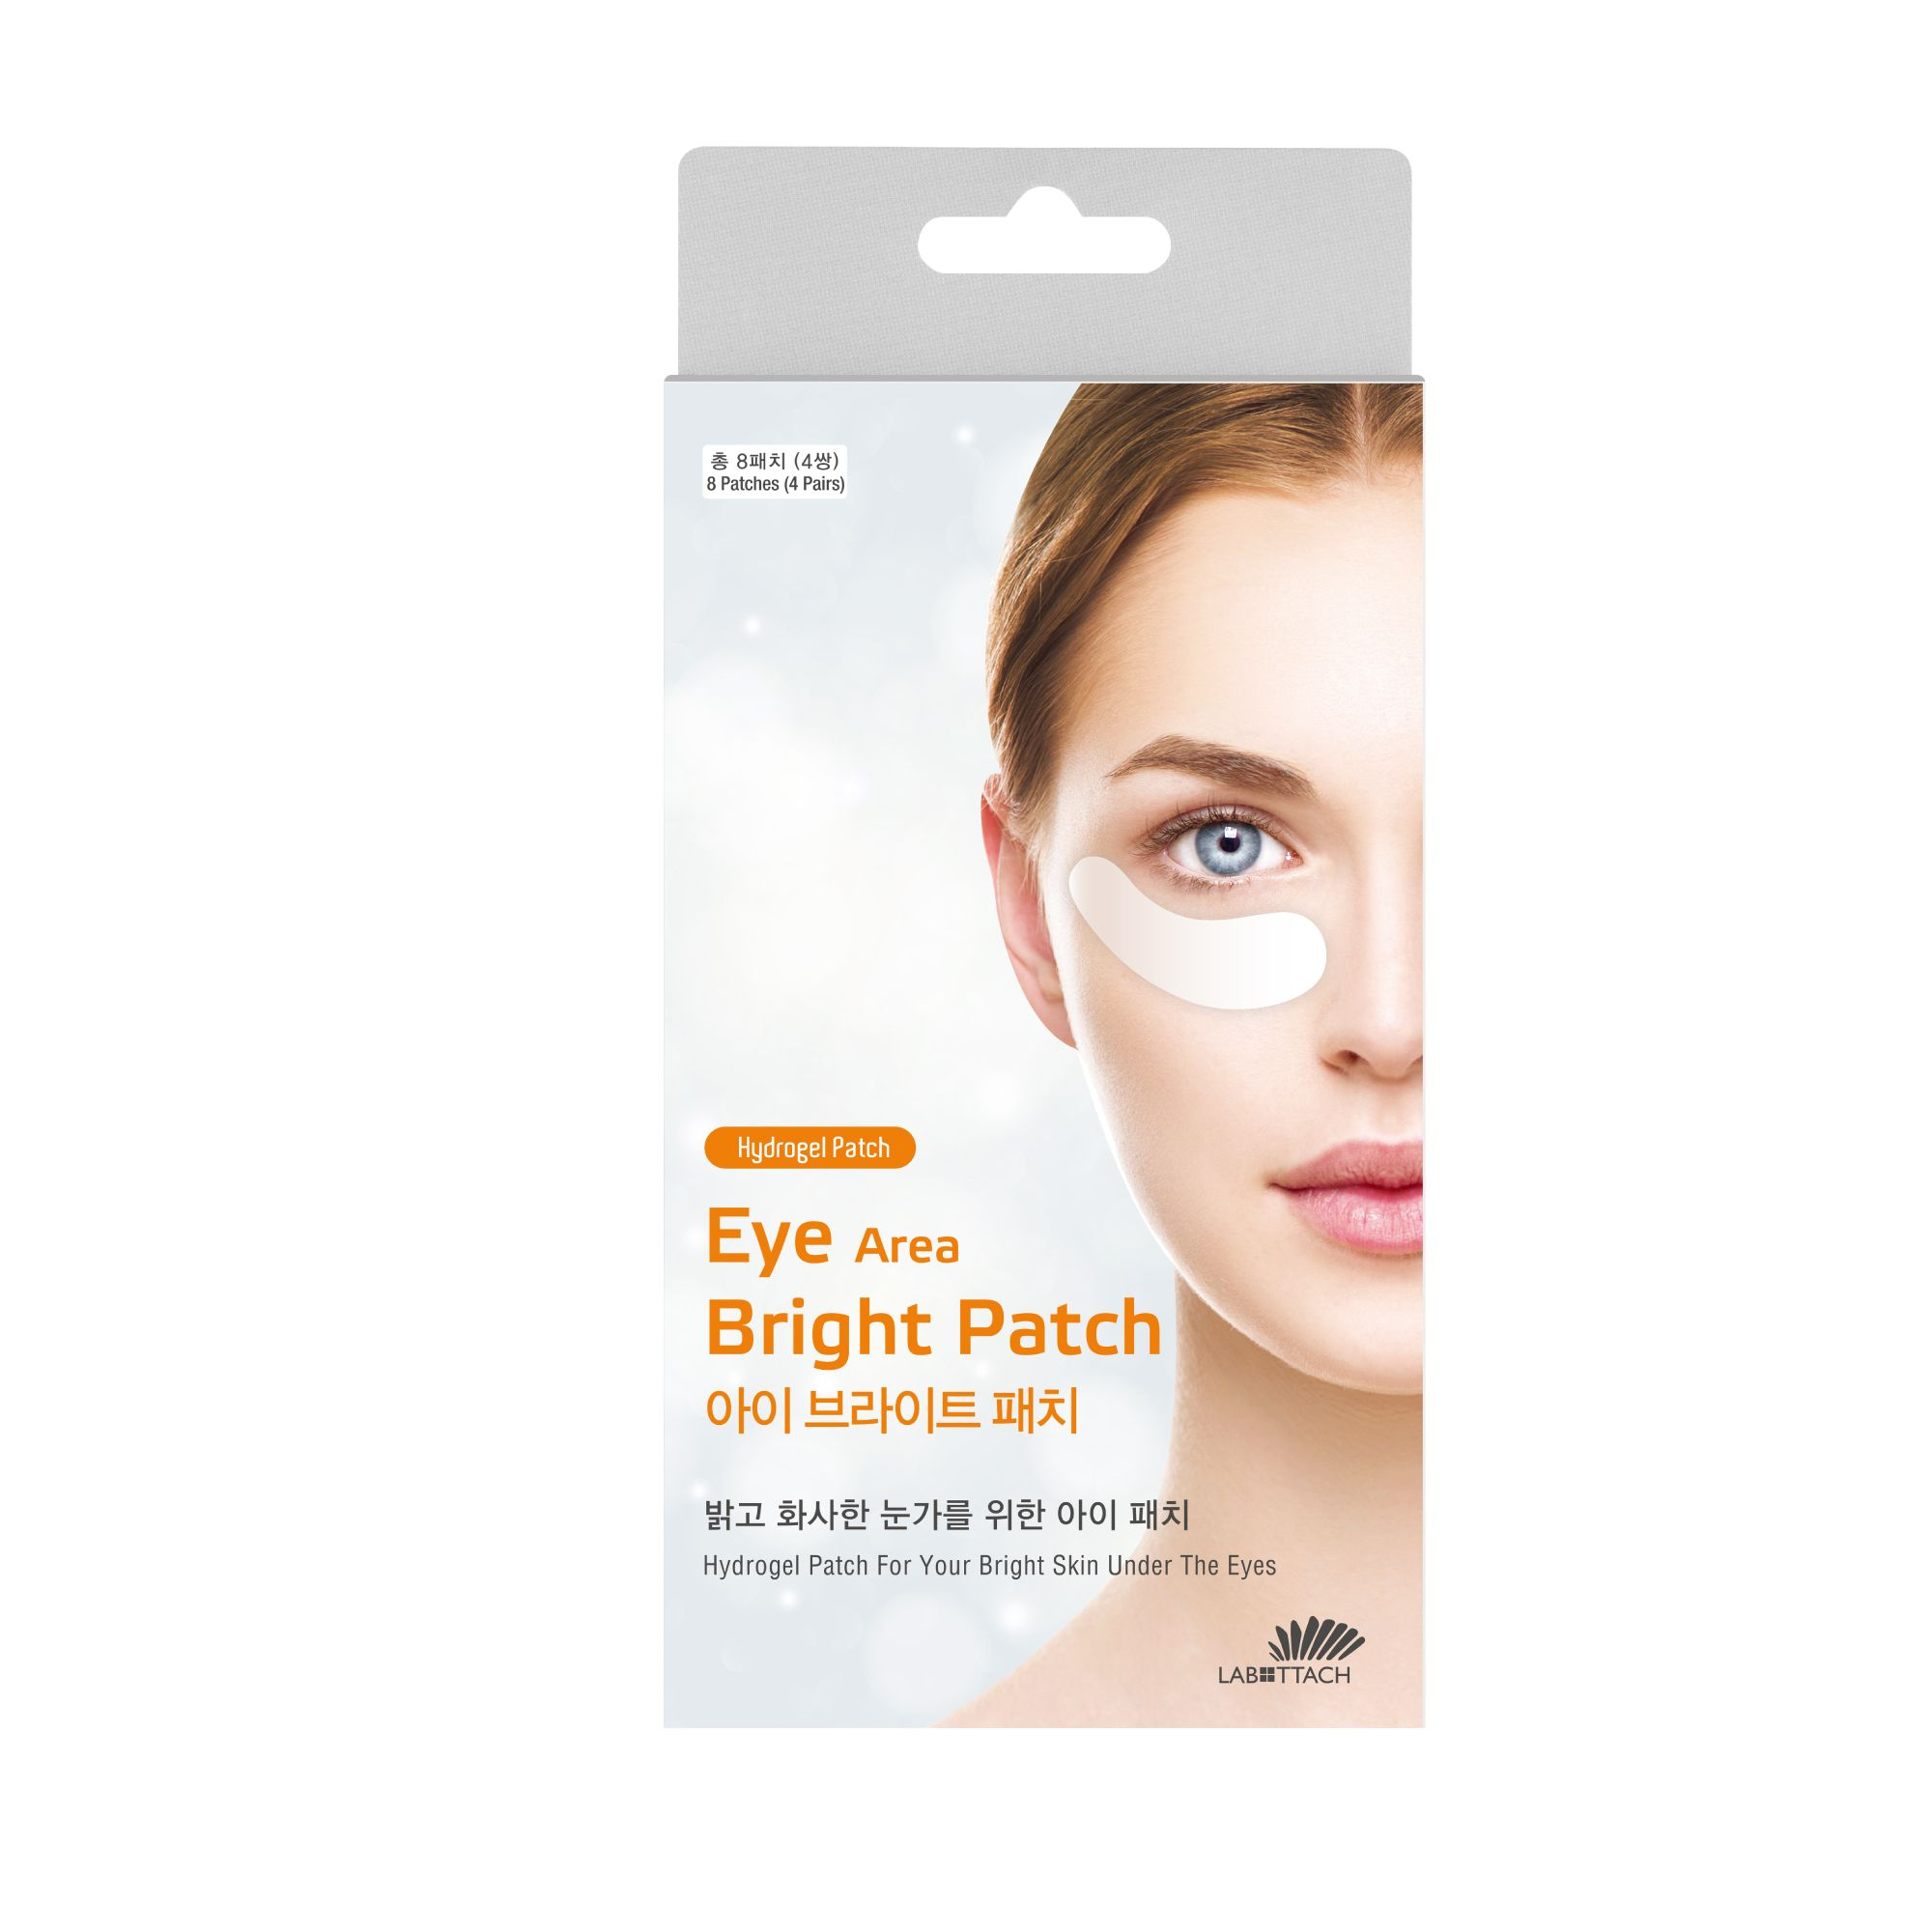 Eye Area Bright Patch